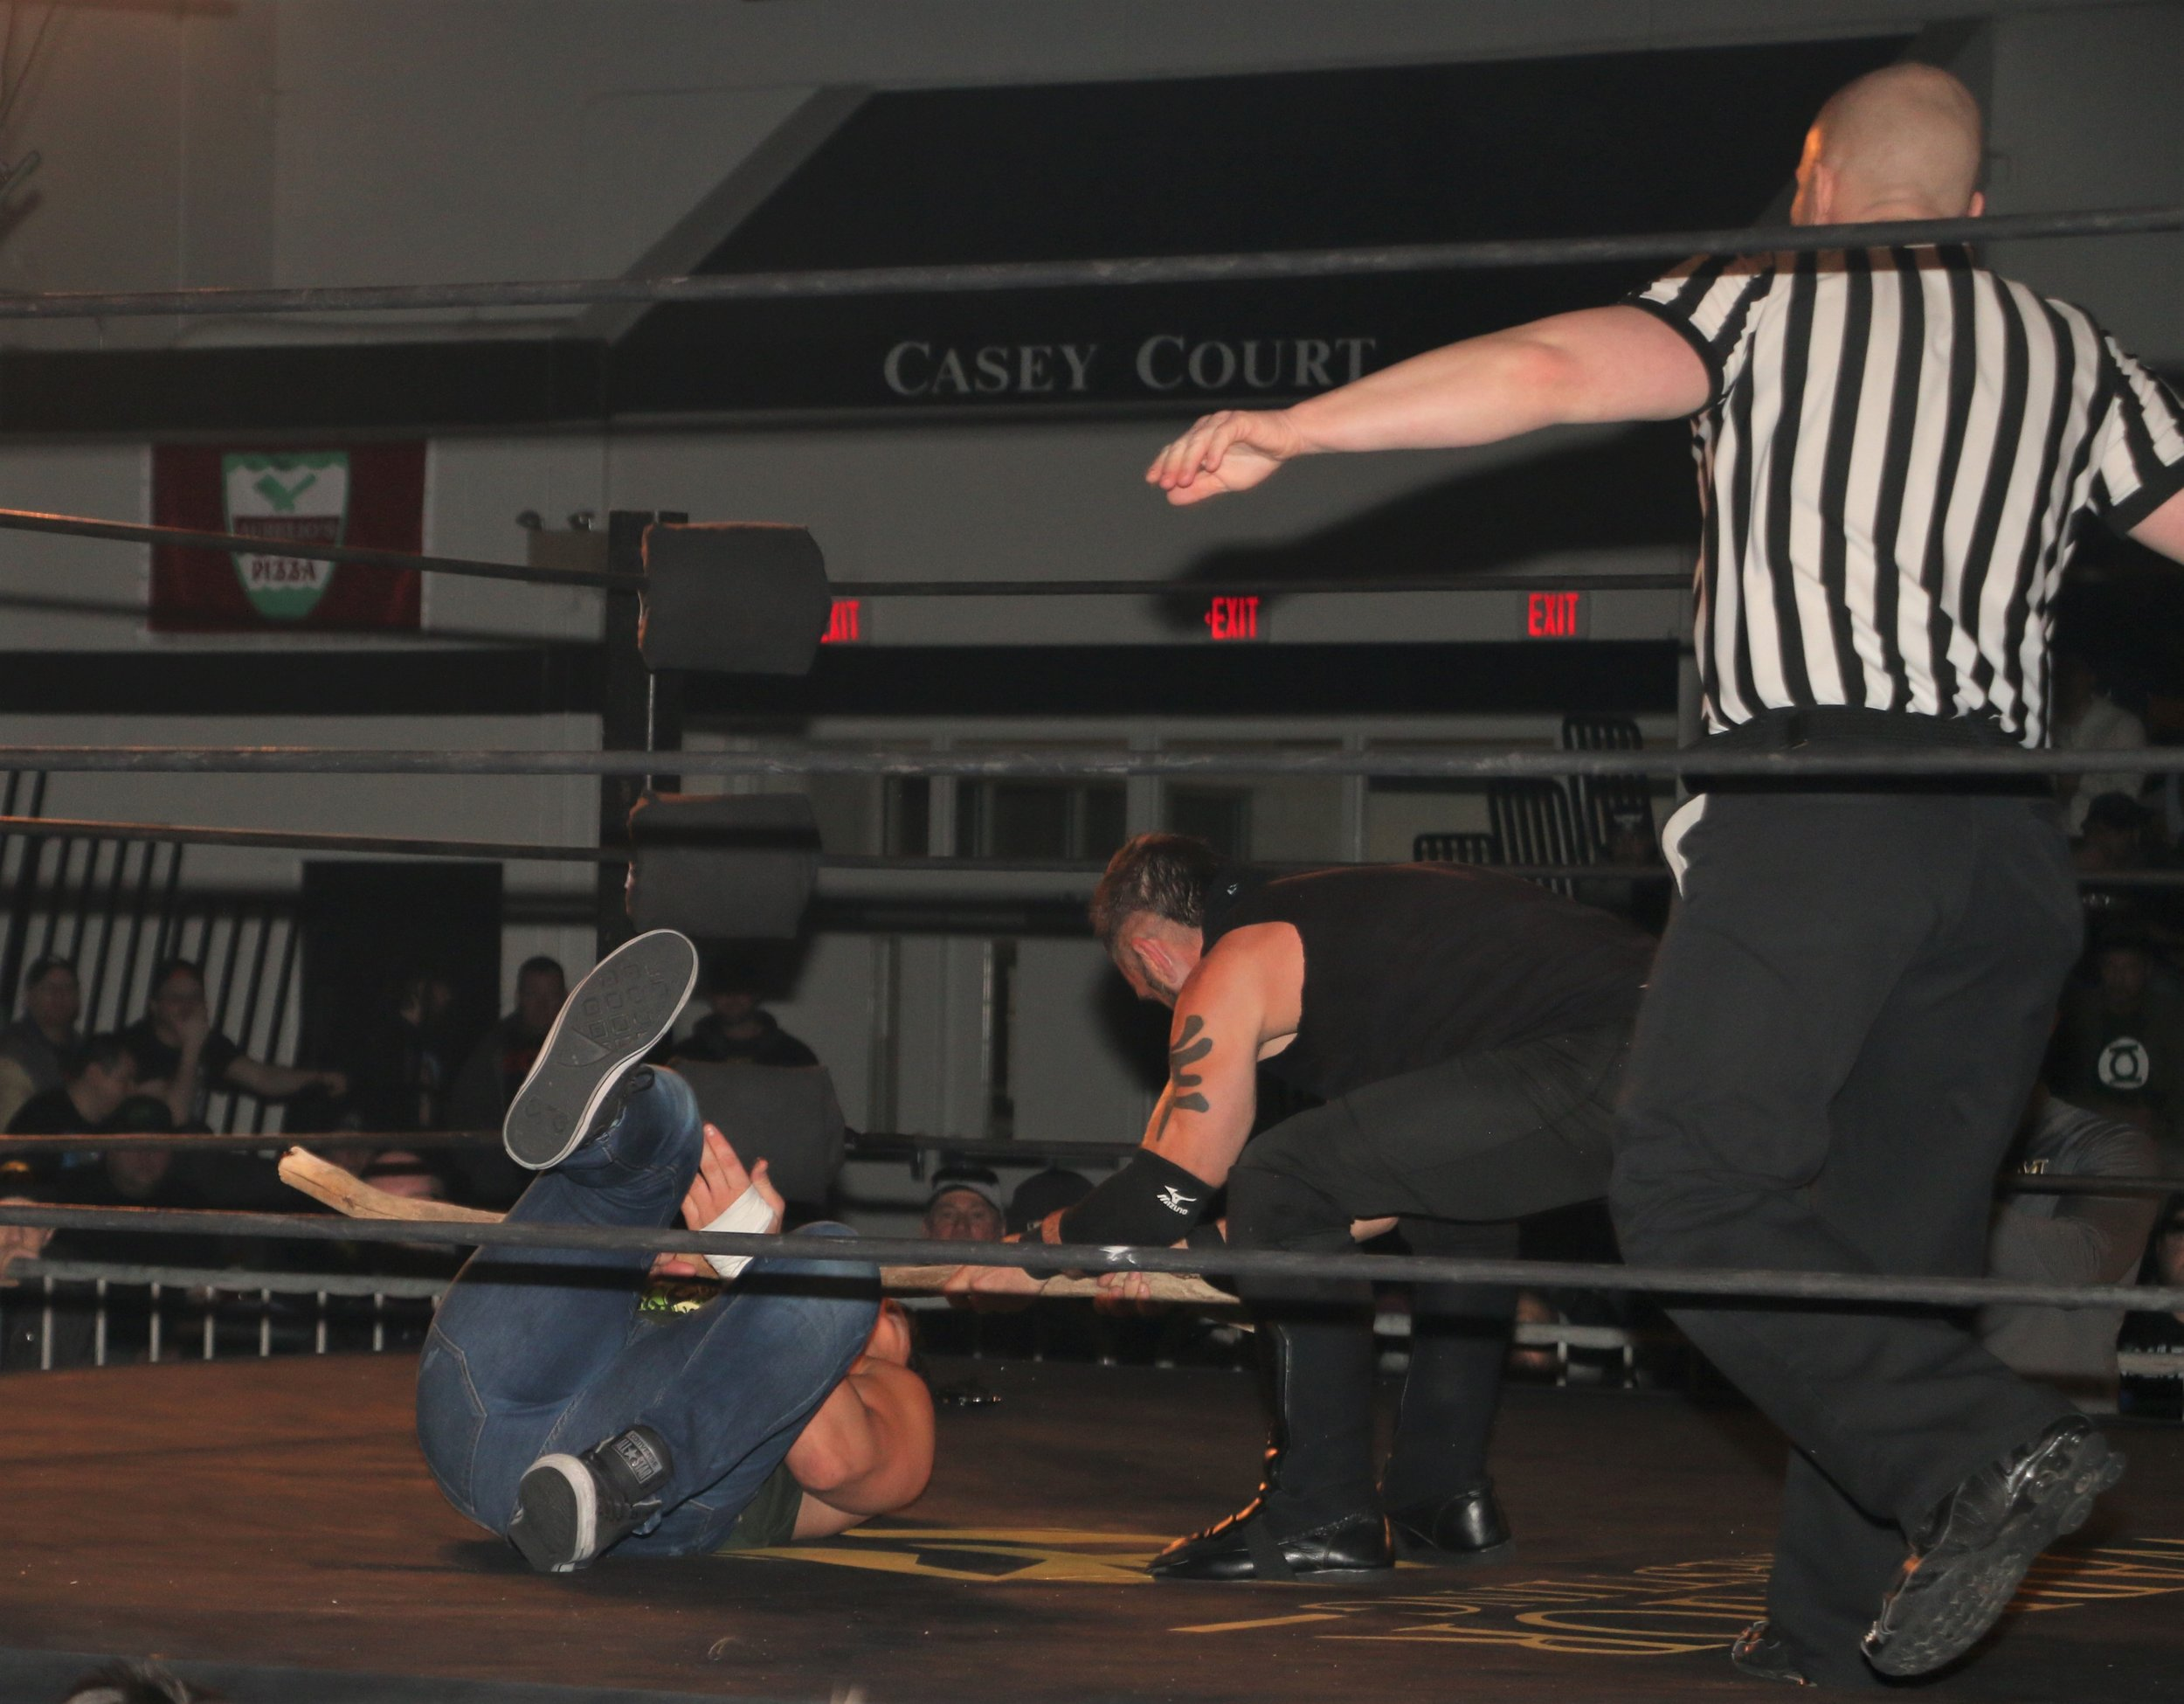 Austin Aries delivers a stick shot to Eddie Edwards, getting disqualified in the process.